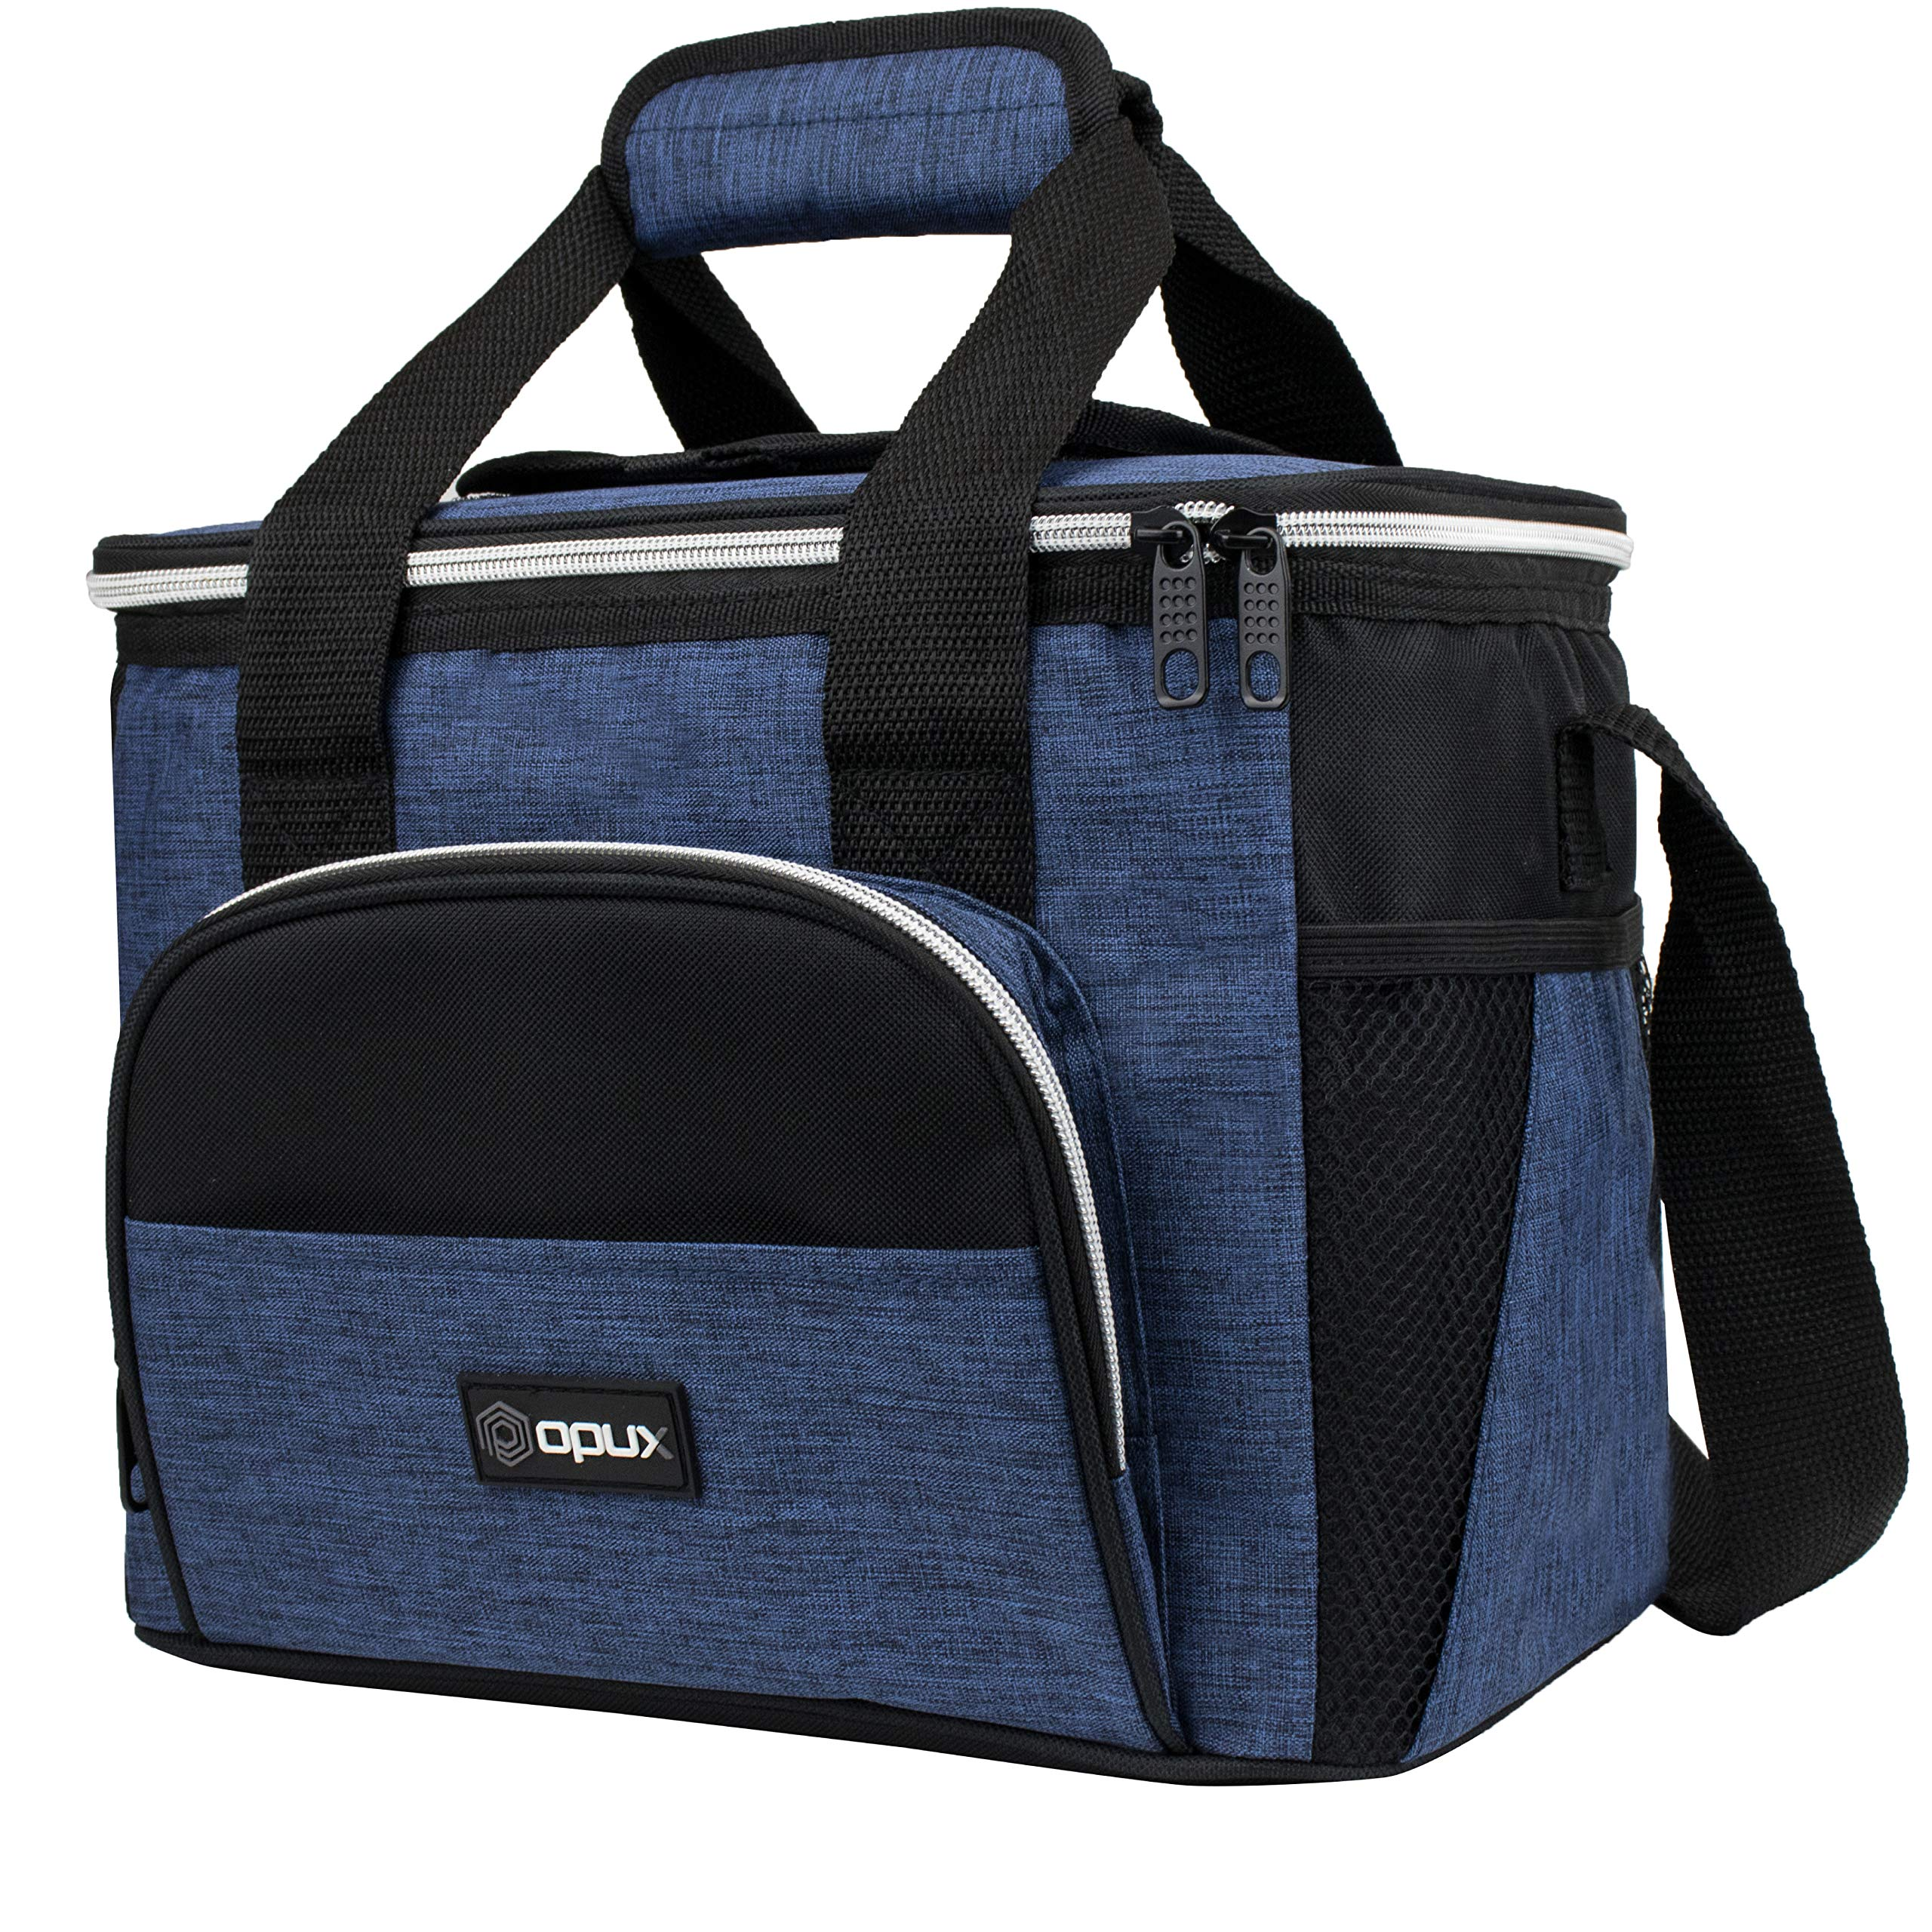 OPUX Insulated Small Cooler Bag for Travel | Soft Collapsible Cooler Bag for Family Camping, Beach | Large Leakproof Lunch Bag Box for Work, Construction Lunch Pail | Fits 16 Cans (Heather Navy)